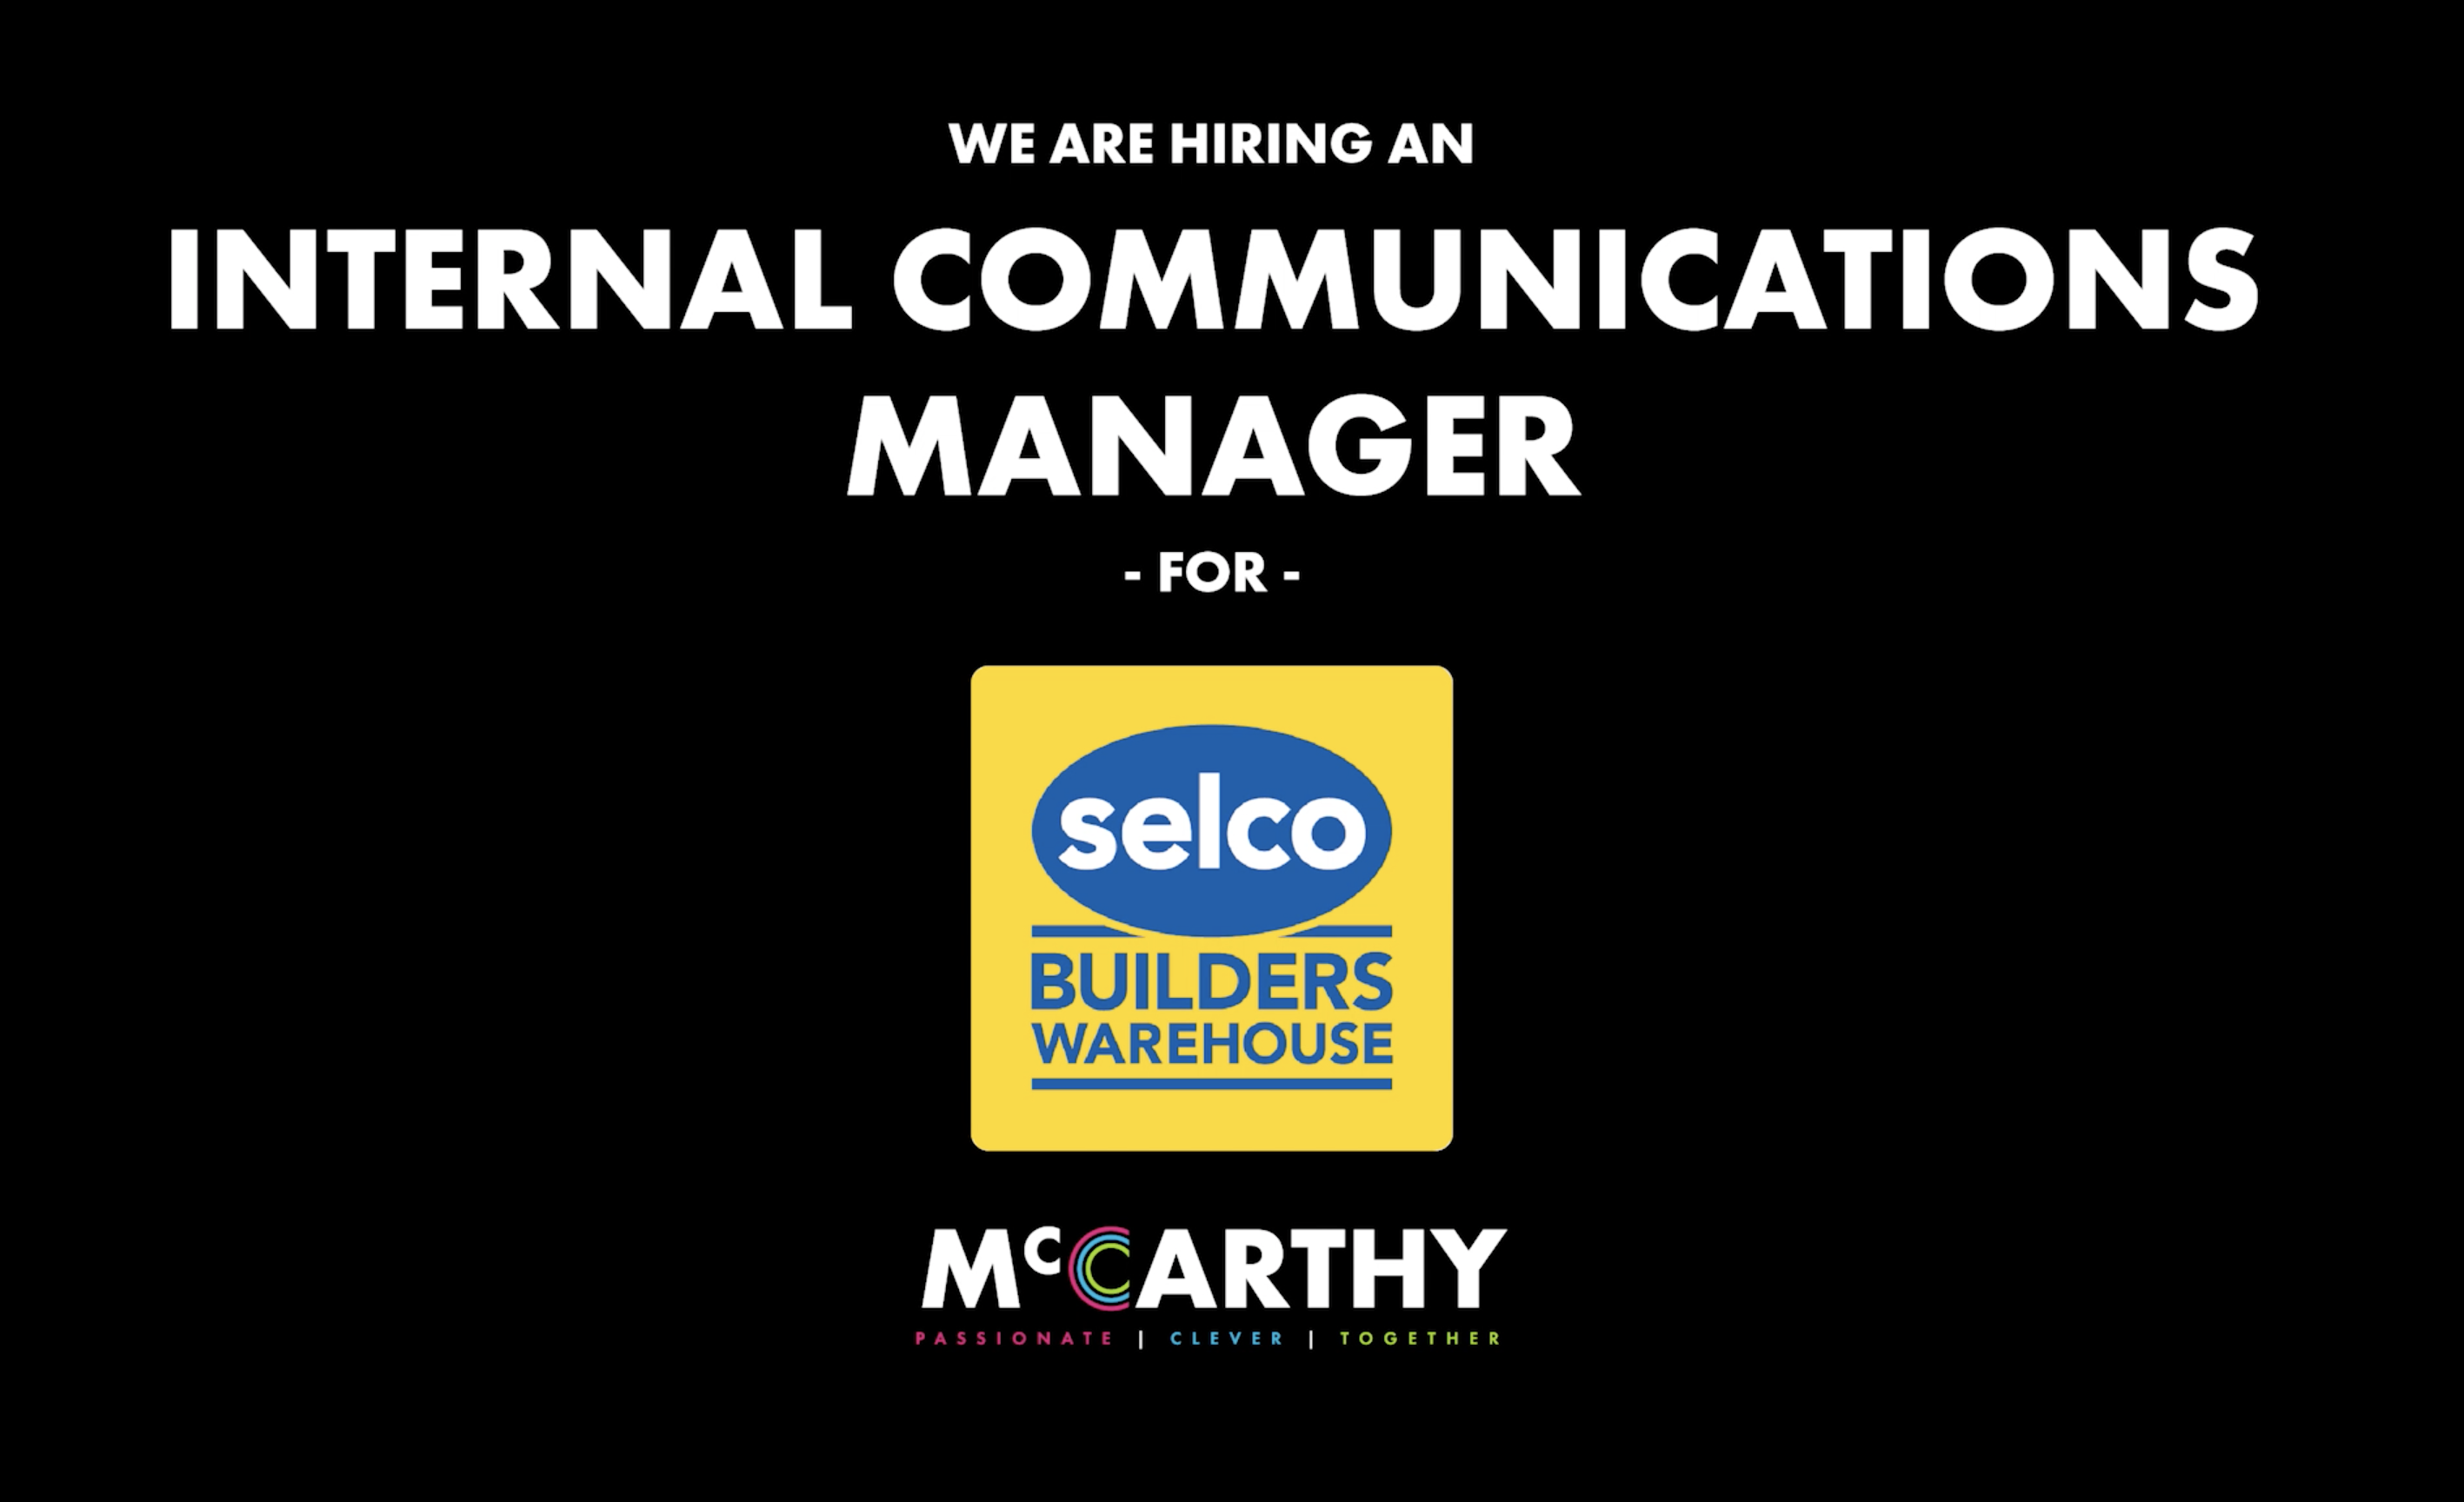 Internal communications manager